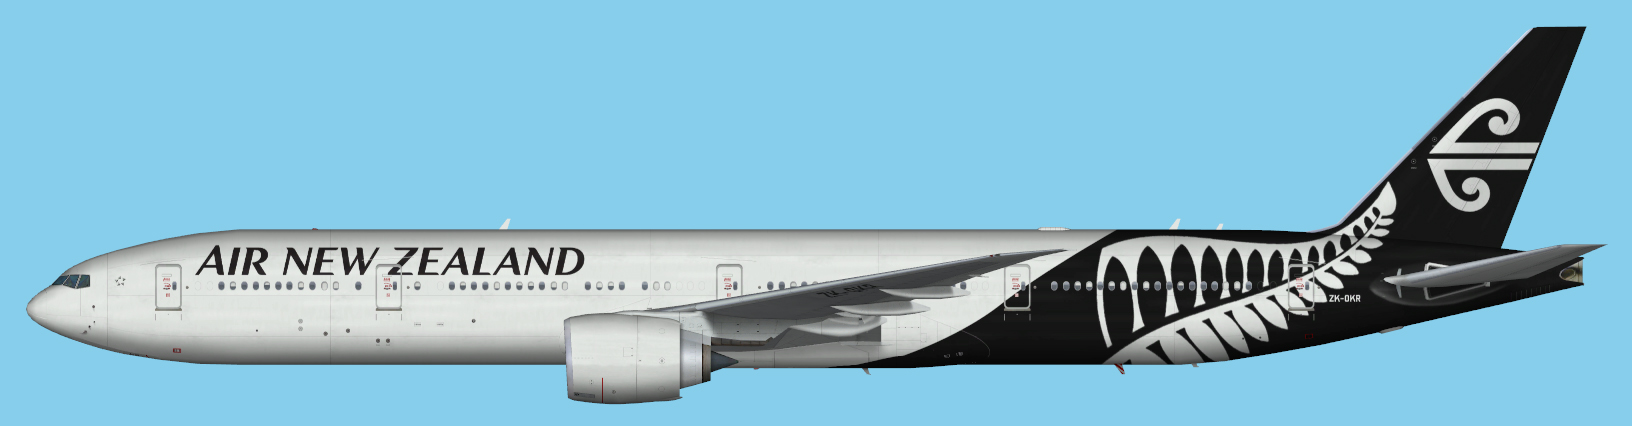 Air New Zealand Boeing 777-300ER FSPainter FSX | JCAI